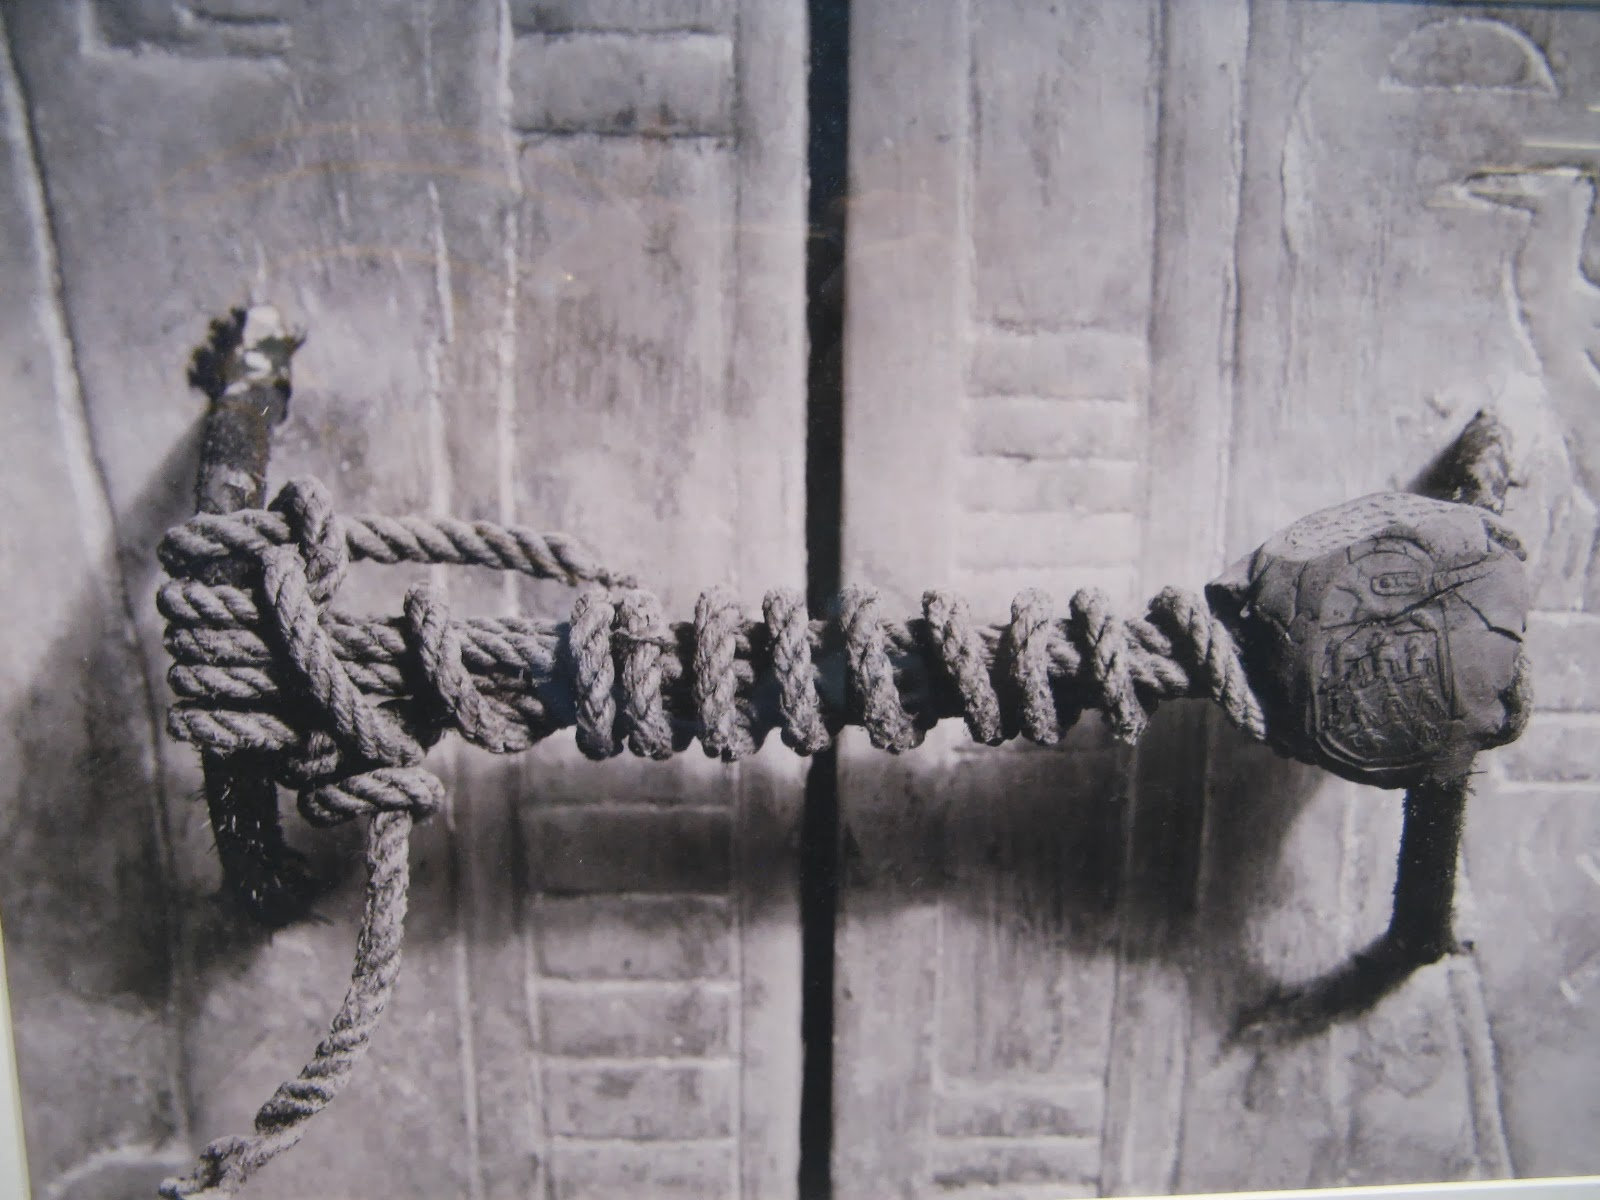 The unbroken seal on King Tutankhamun's tomb, 1922